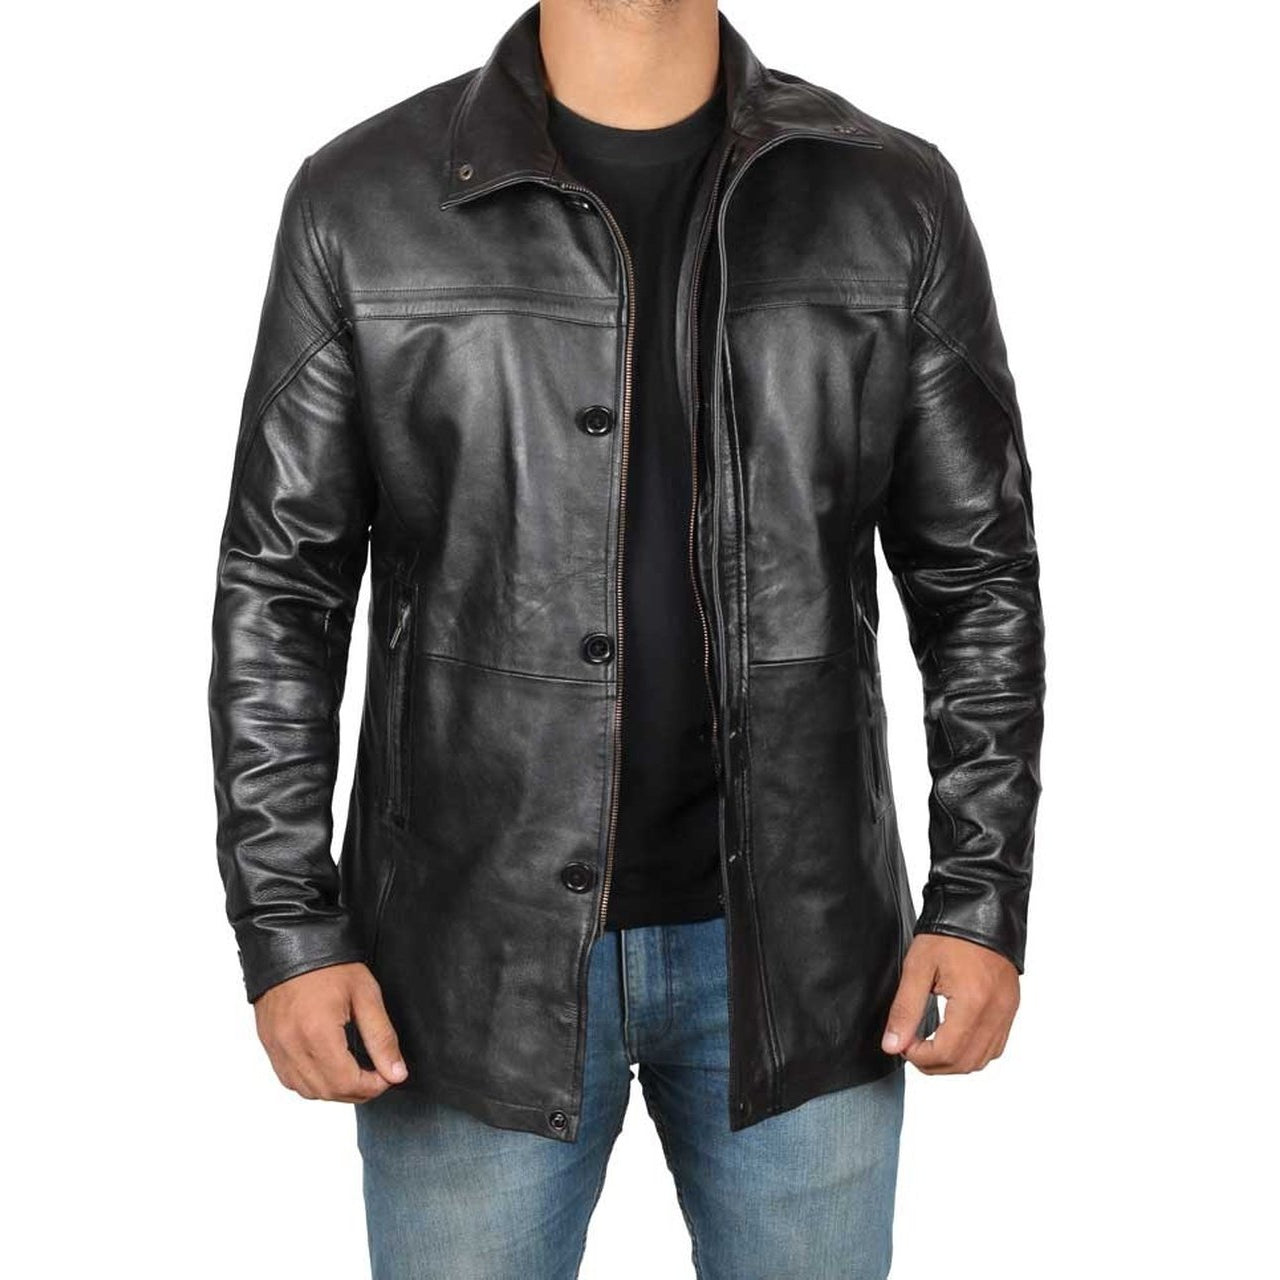 Genuine Black Leather Car Coat Men - Leather Jacket